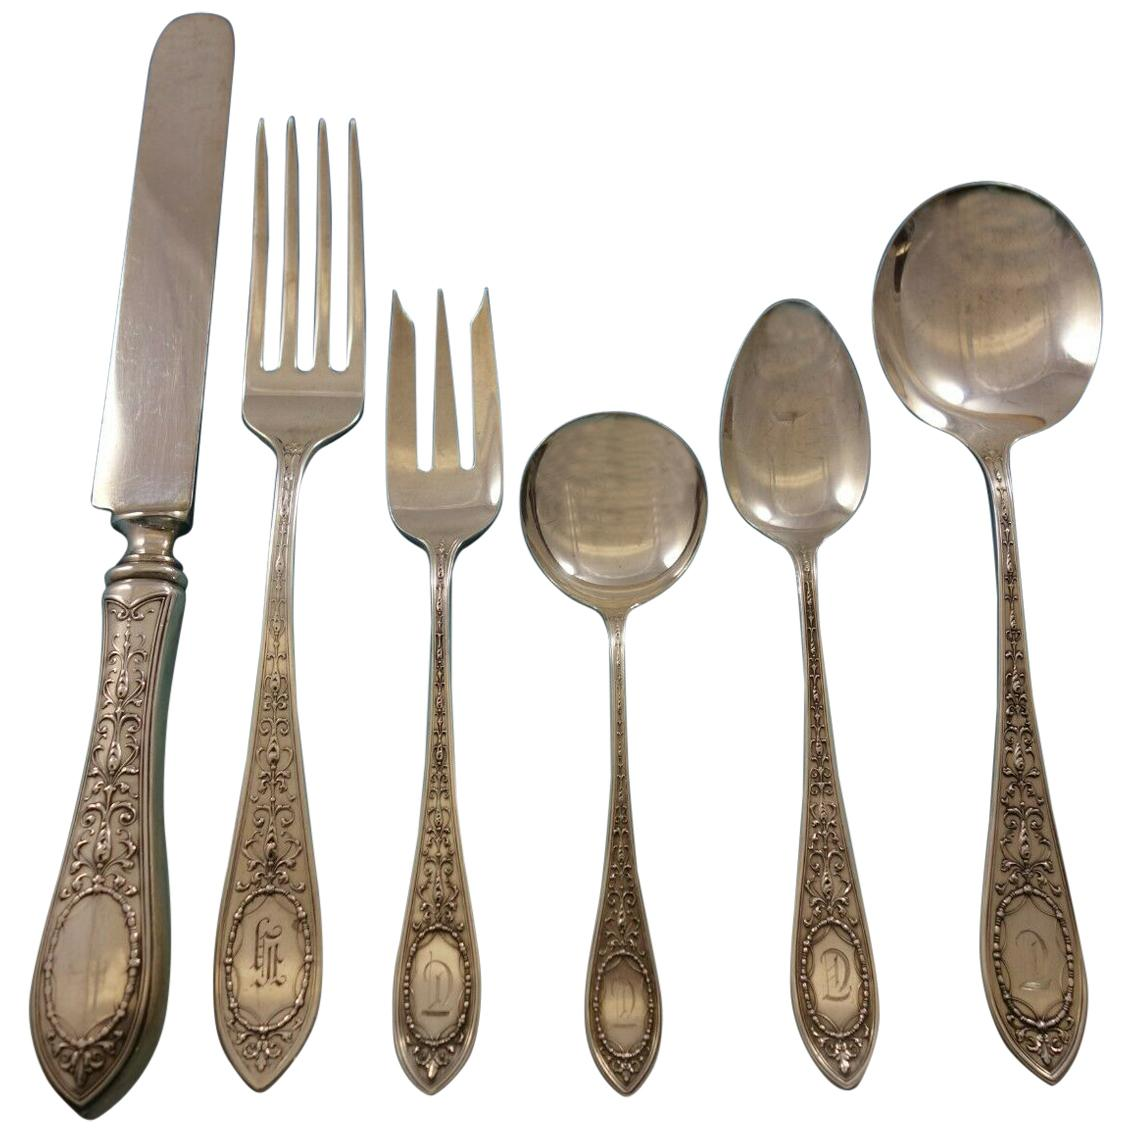 Adam by Whiting Sterling Silver Flatware Set for 12 Service 72 Pieces Dinner